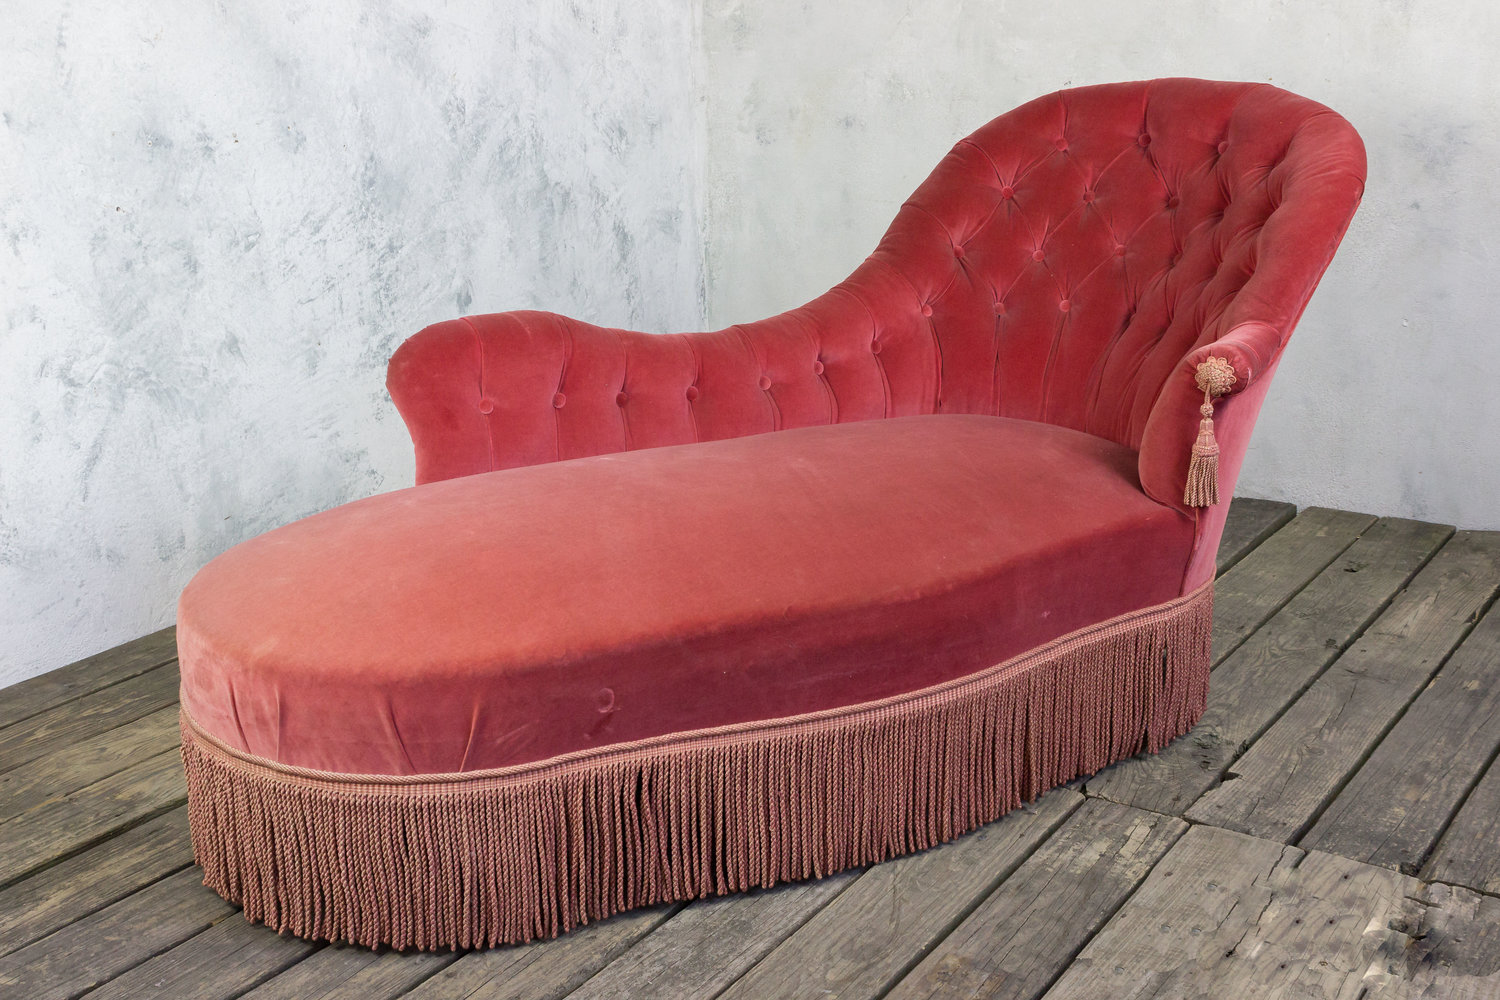 chaise lounges — 145 Antiques